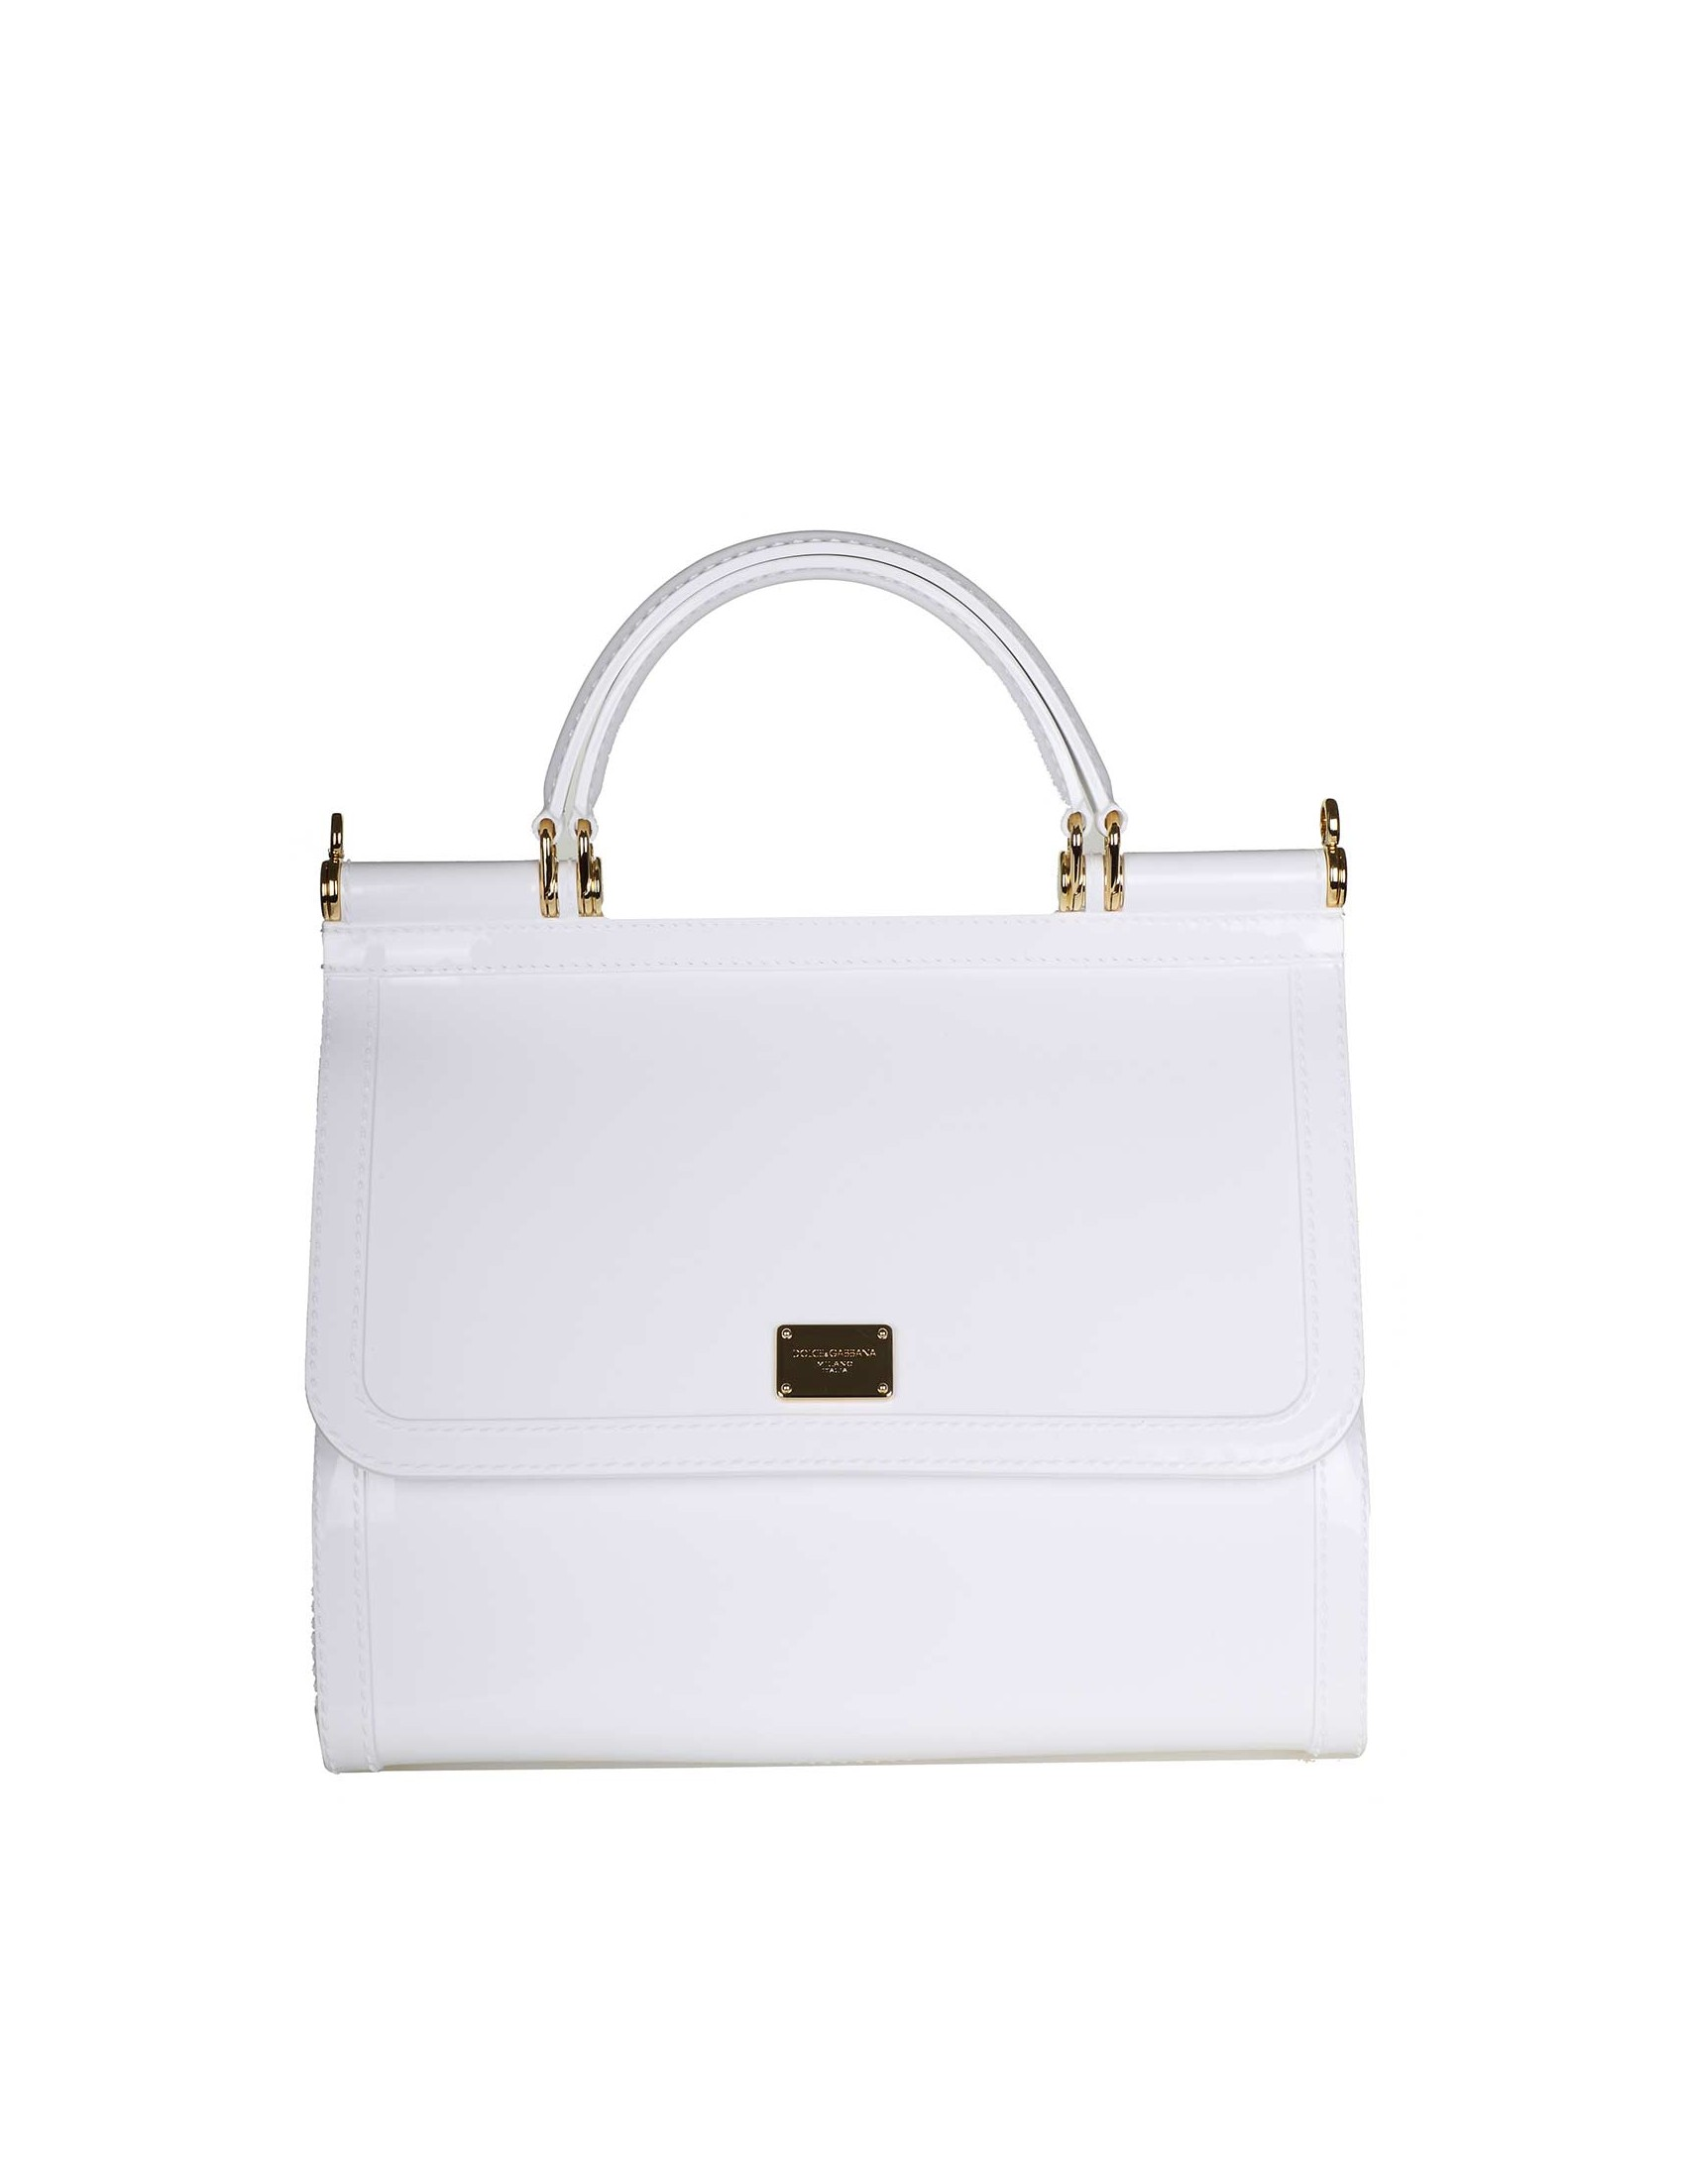 d26ebb0eb953 Sicily handbag in semitransparent rubber. White color. Front flap with  metal plate. Front logo. Double handle with removable top